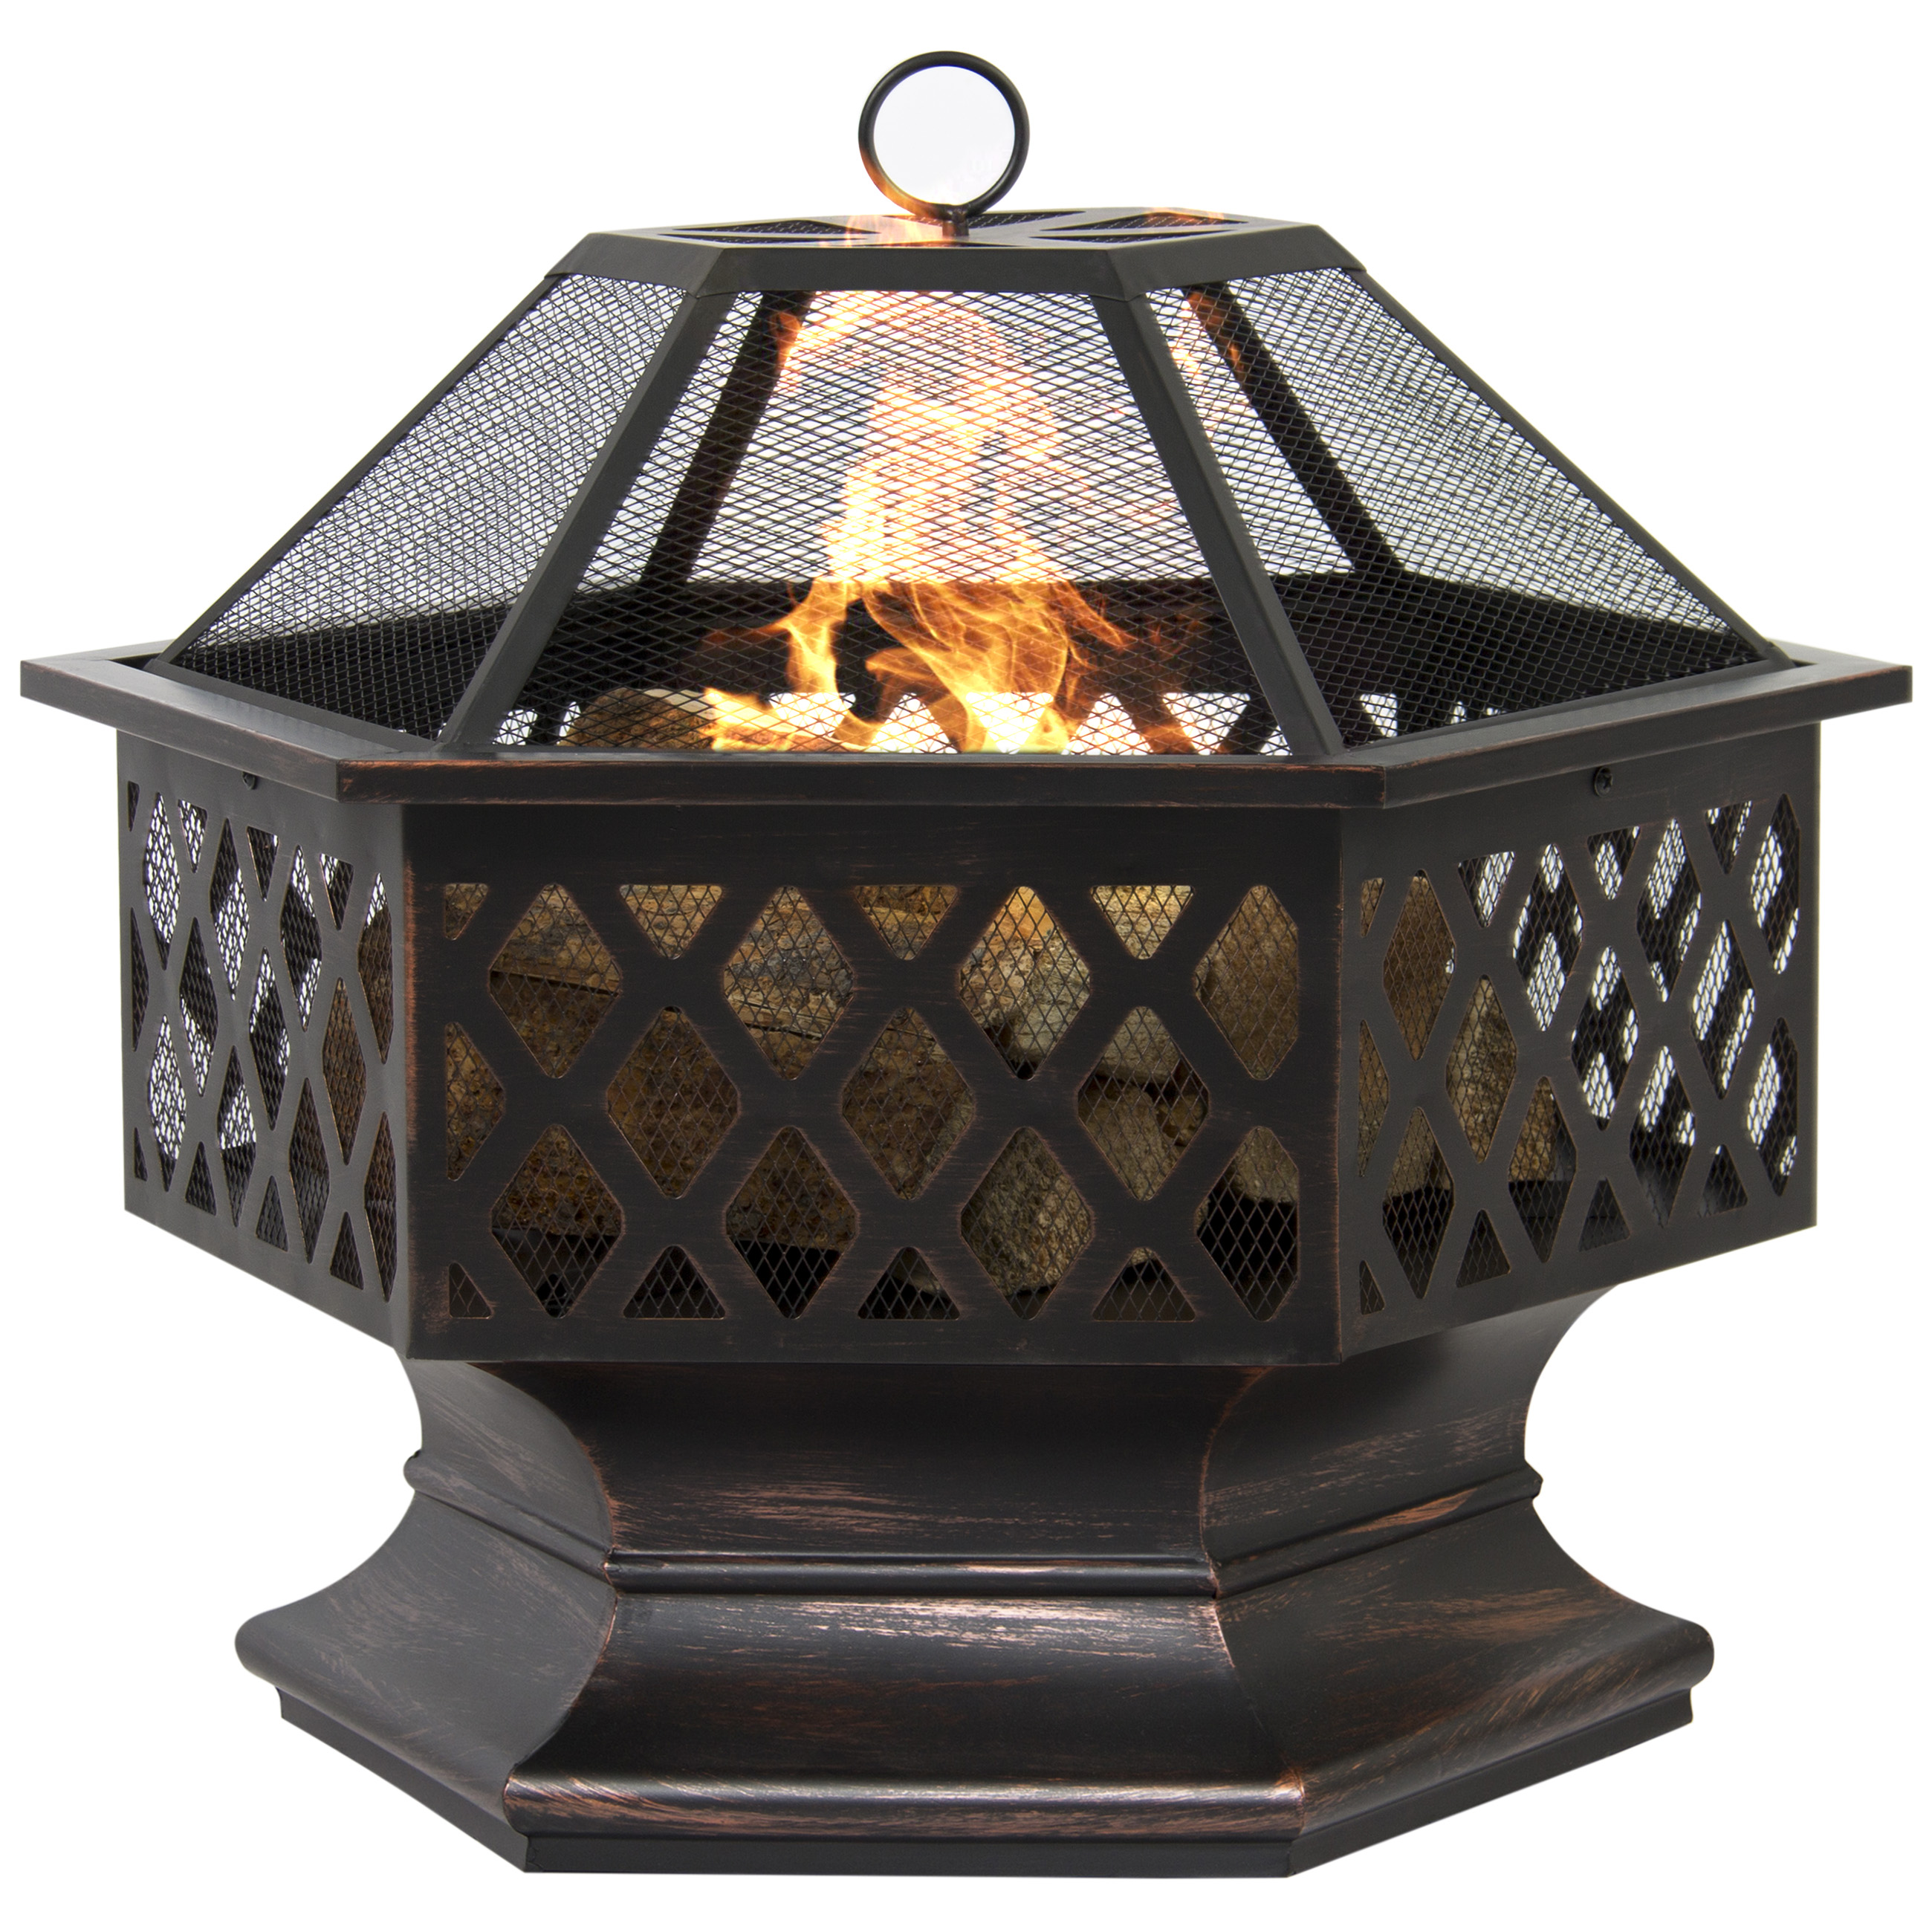 Zeny Outdoor Hex Shaped Patio Firepit Home Garden Backyard Firepit Bowl Fireplace by